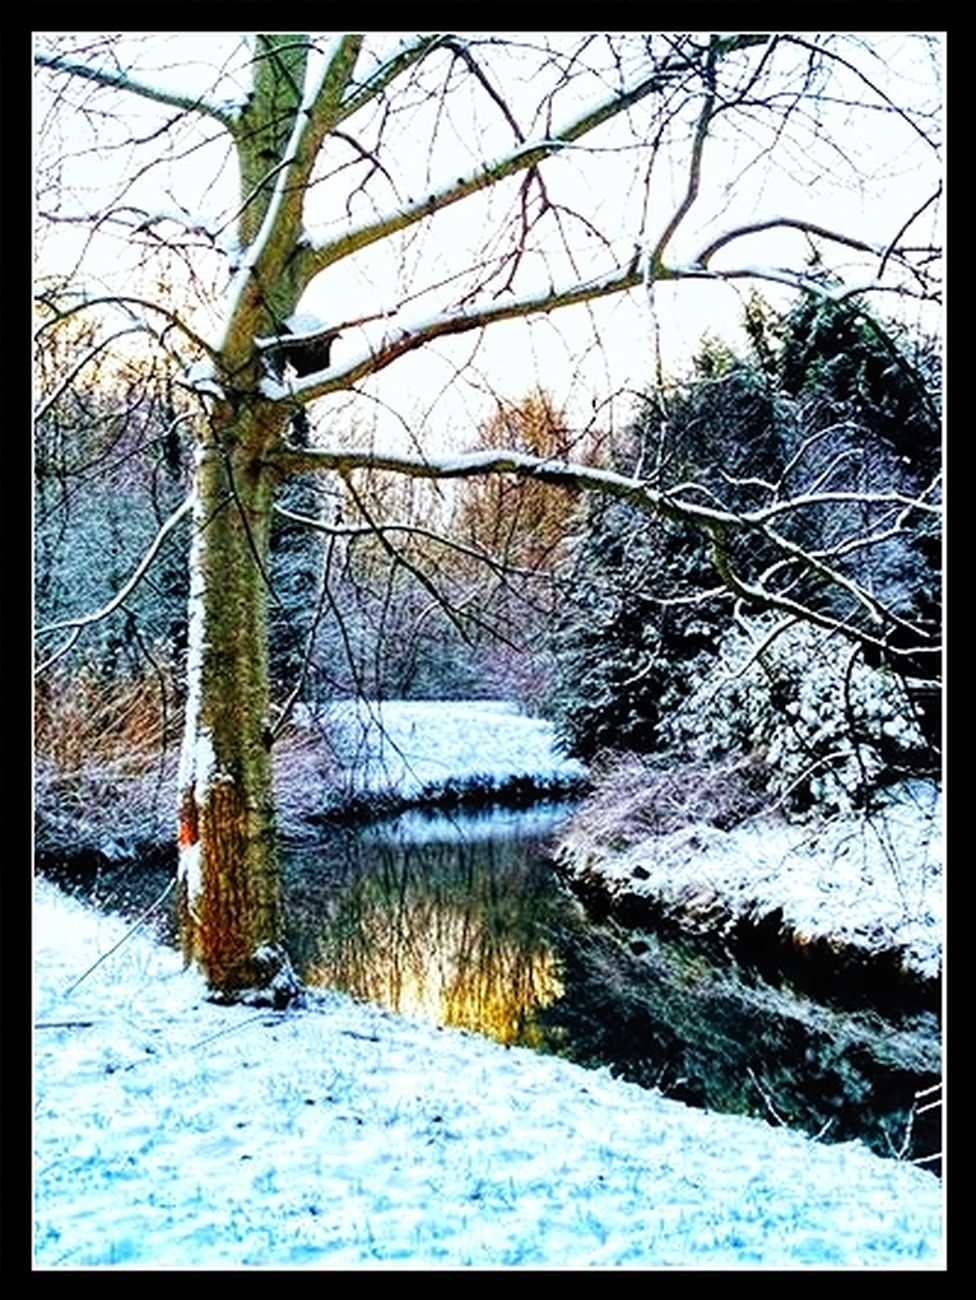 Winter in Tienen. February 16, 2021 Due to the warming of the climate, it has not snowed in Tienen for a long time. The photos may not be like other winter landscapes Theo-Herbots-Photography https://groetenuittienen.blog/